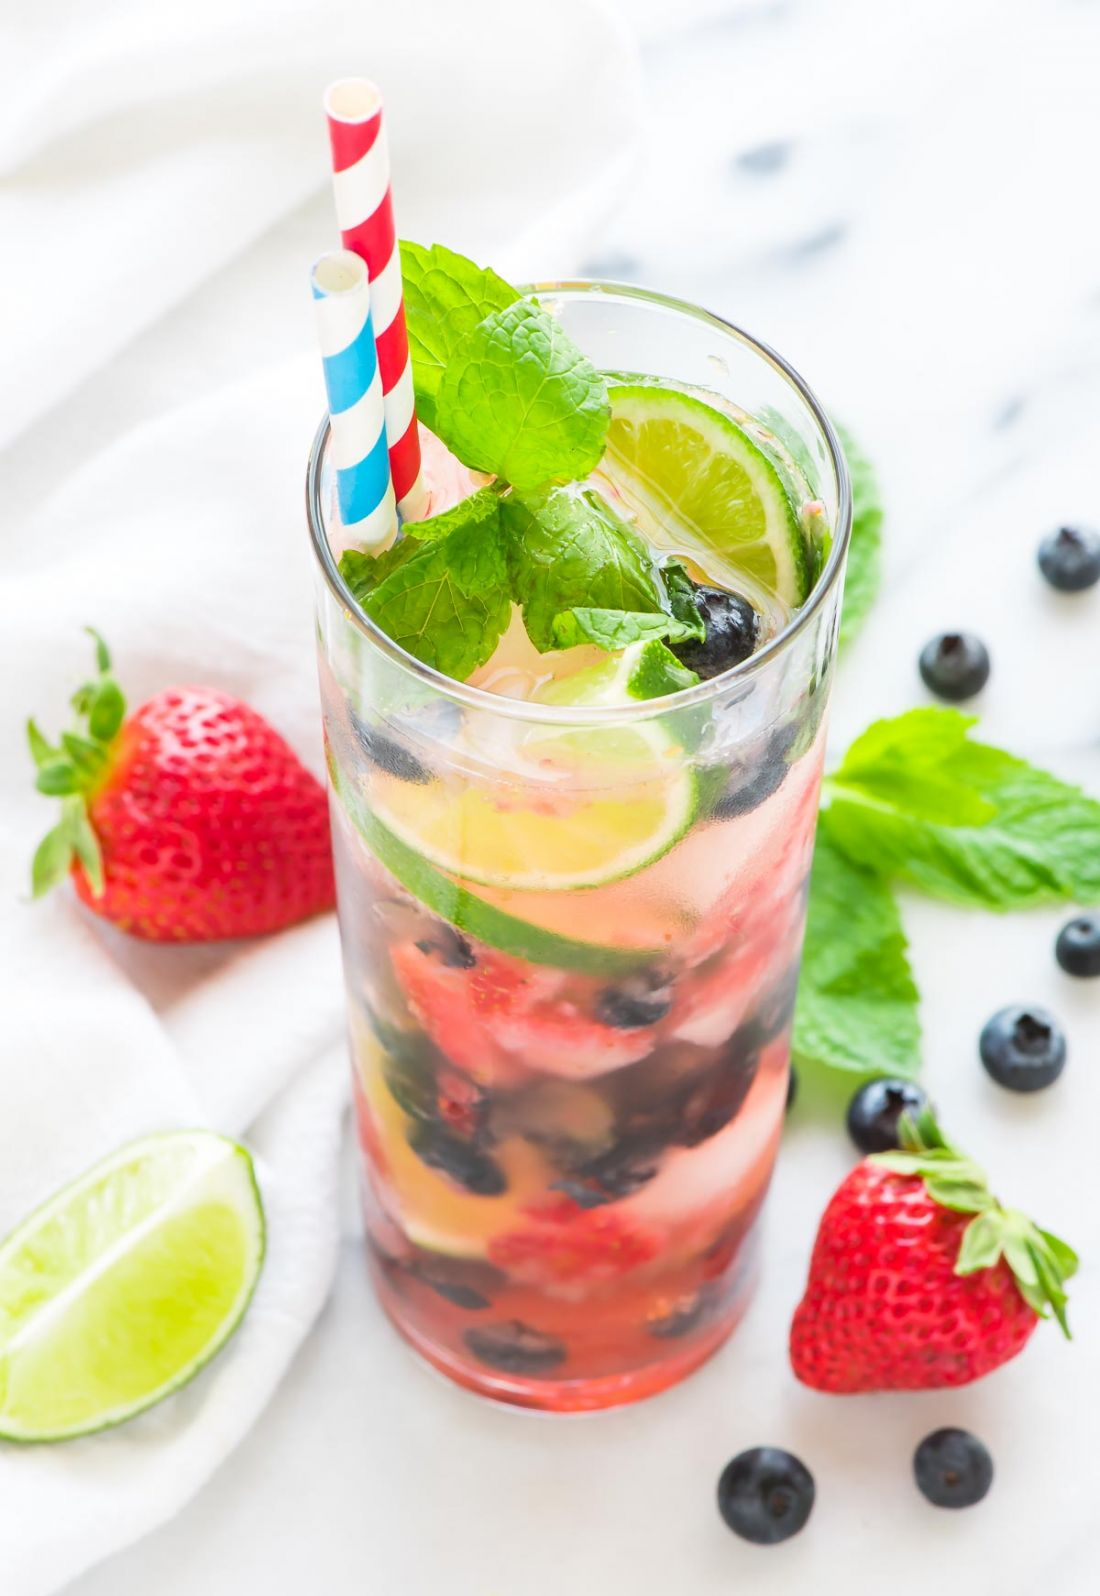 Blueberry Strawberry Mojito (The perfect pairing for Memorial Day Weekend, the 4th of July, or really any weeknight or weekend you want to grill this Summer!)